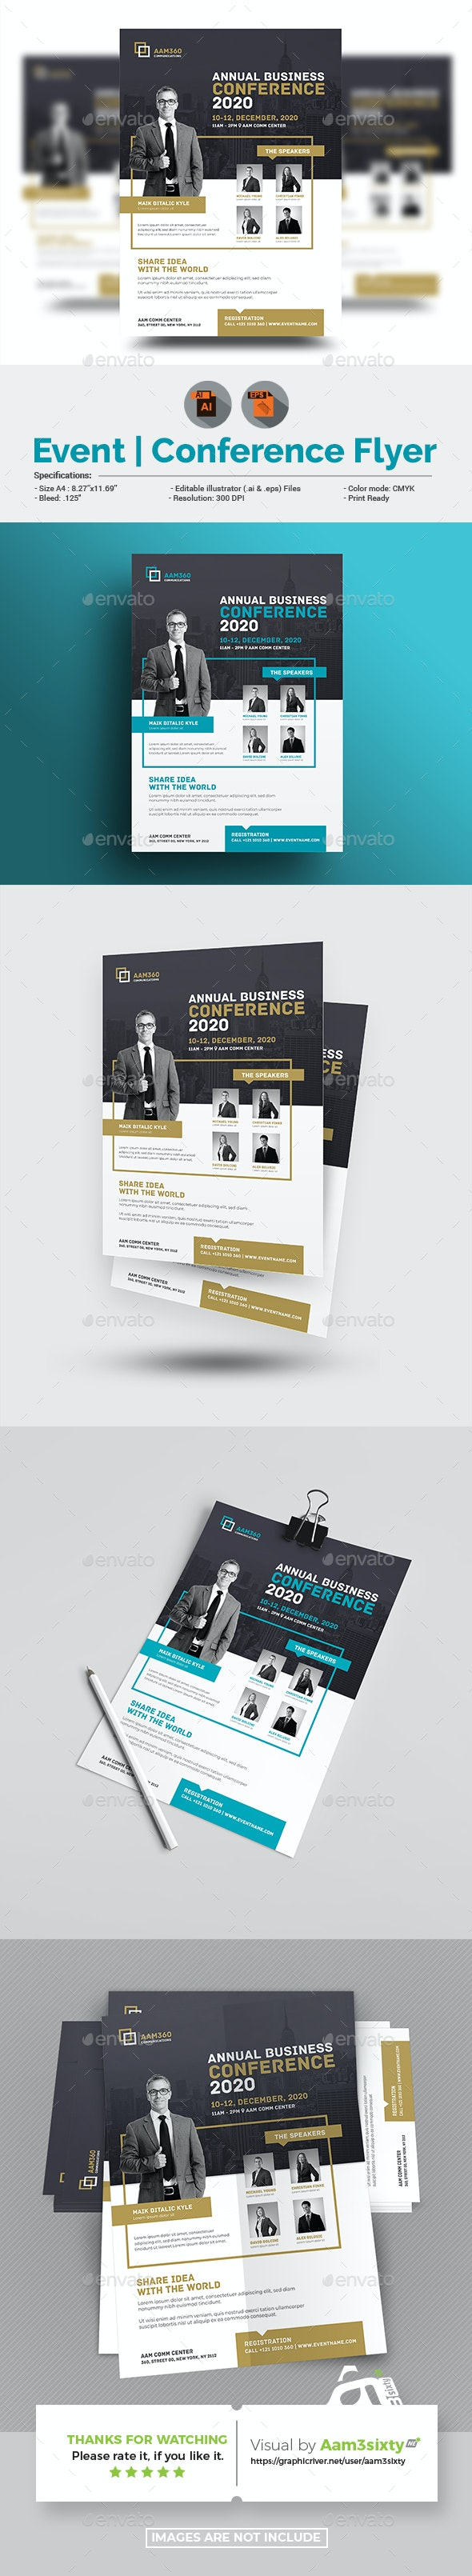 Conference / Event Flyer Template - Corporate Flyers